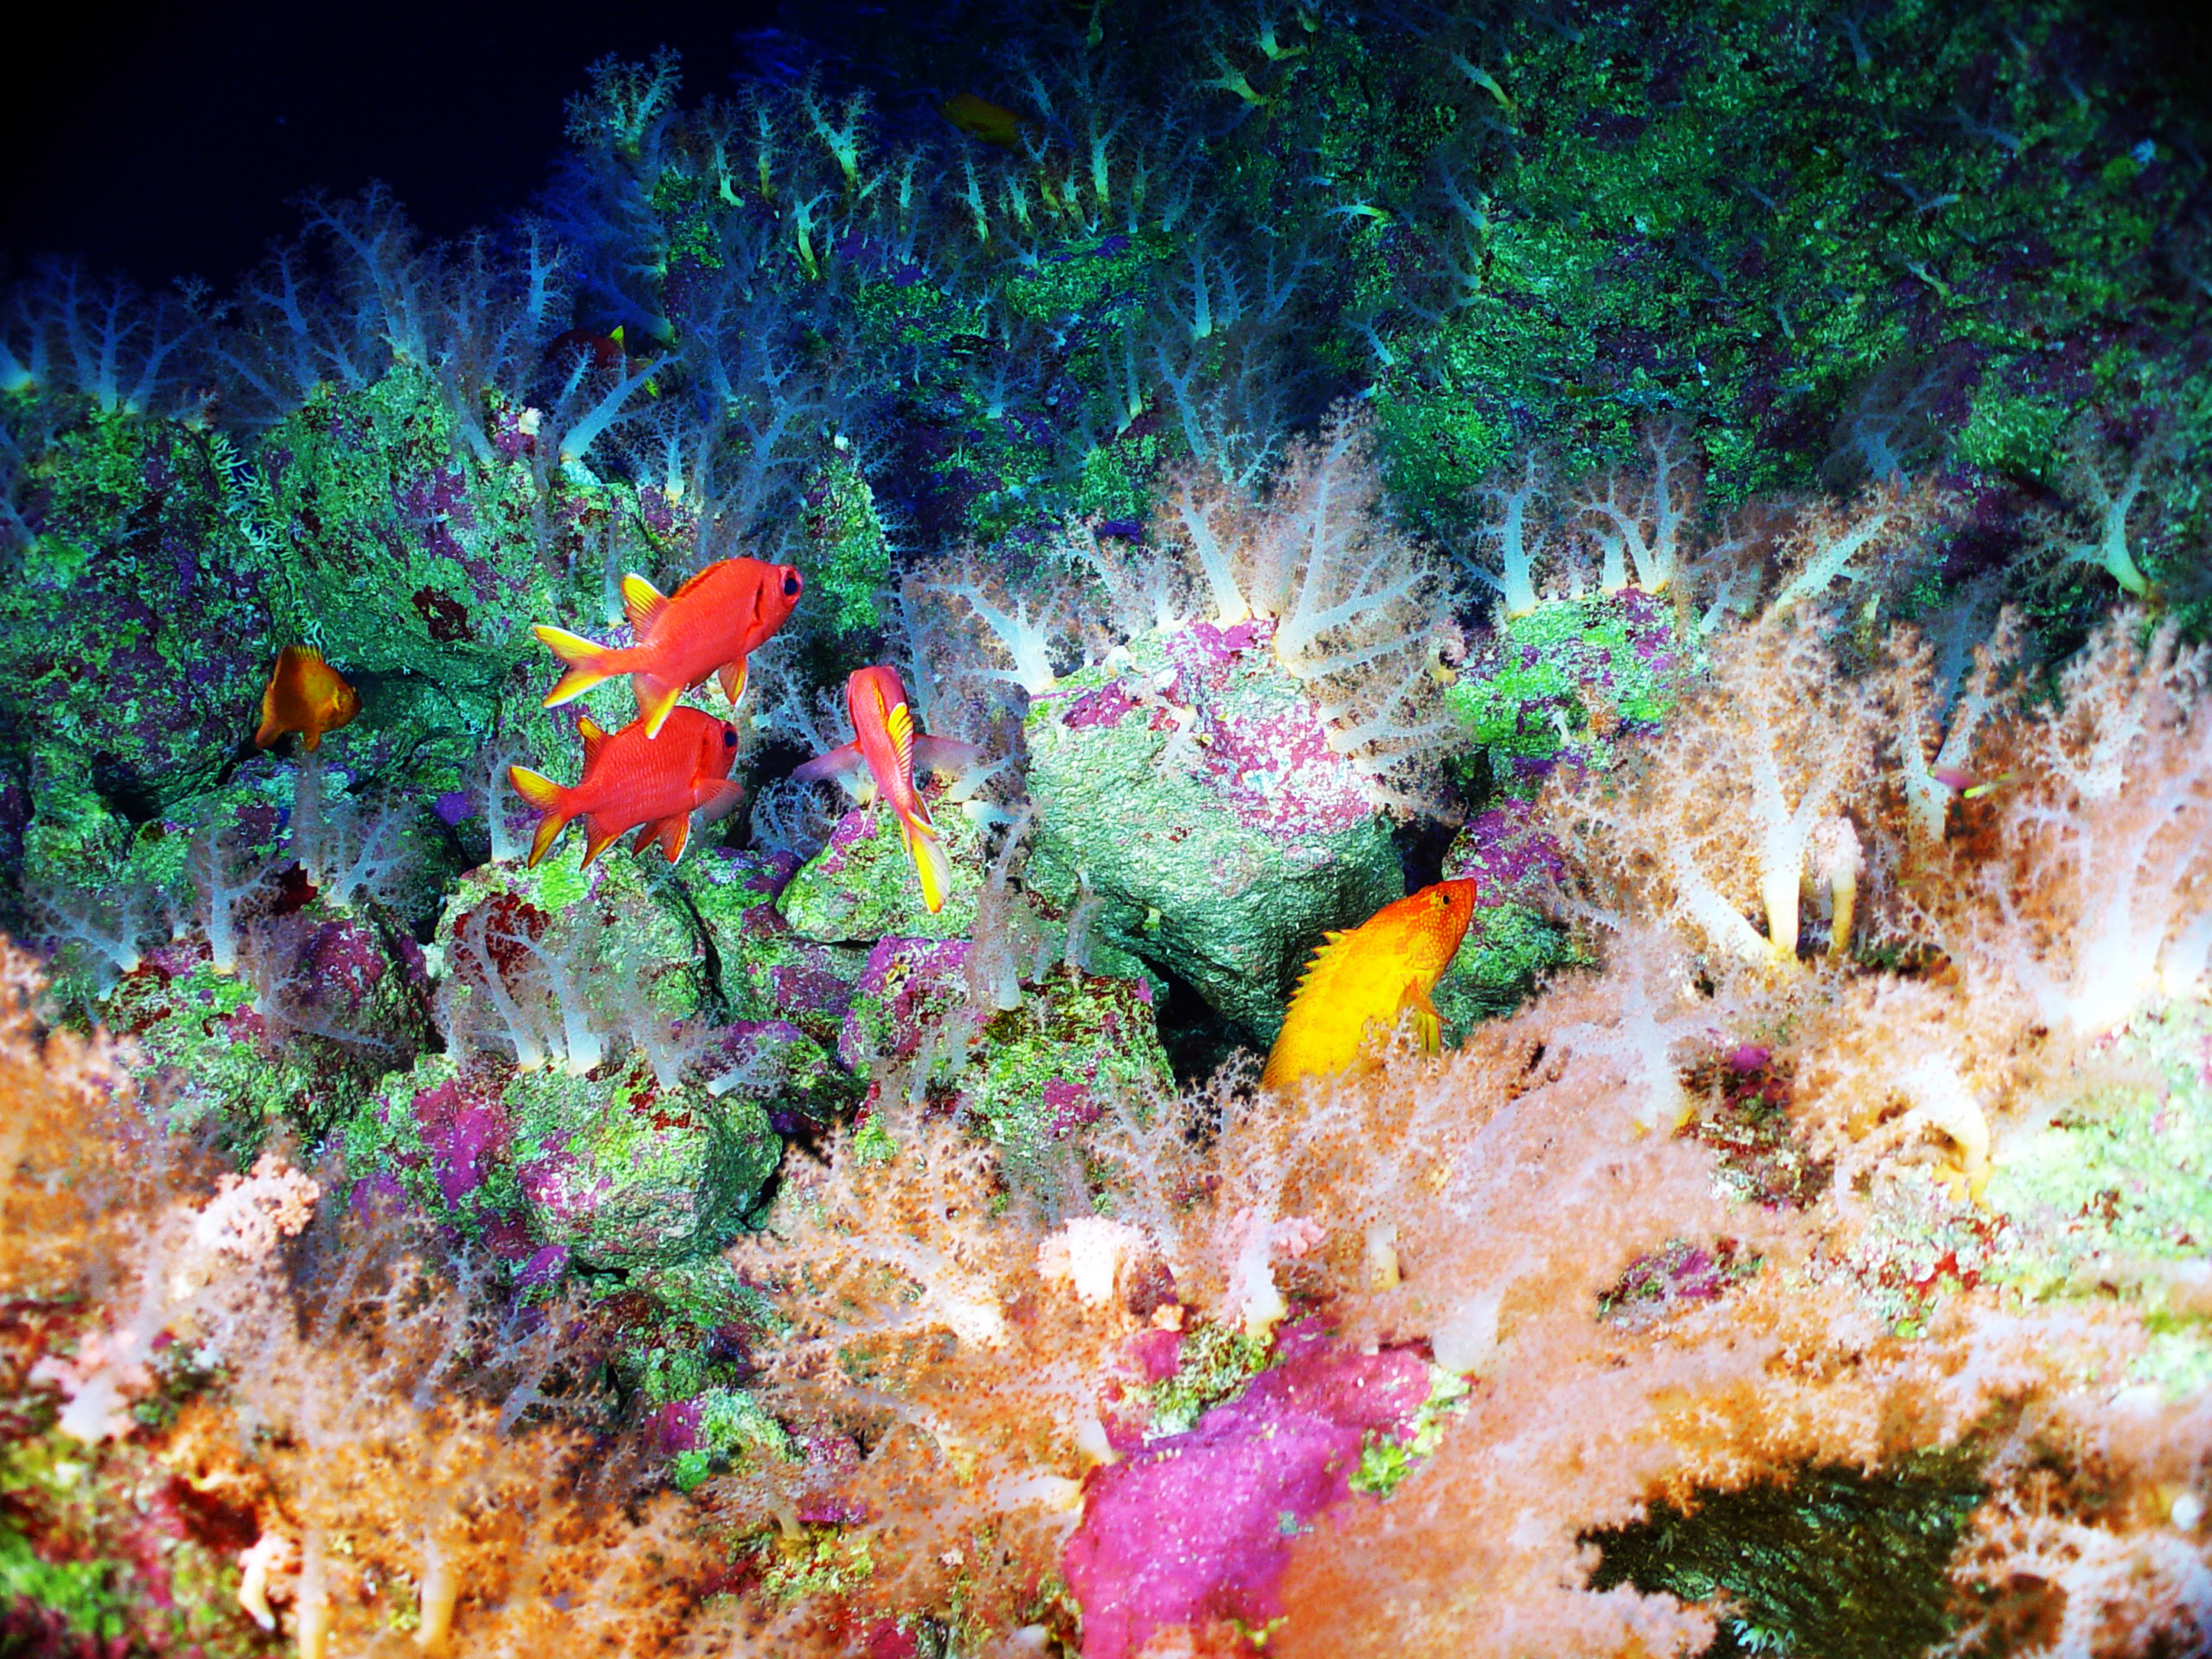 Colorful tropical fish, soft corals, and basket stars covering the top of a volcanic spine from the Mariana Arc region of the Western Pacific Ocean circa 2004.